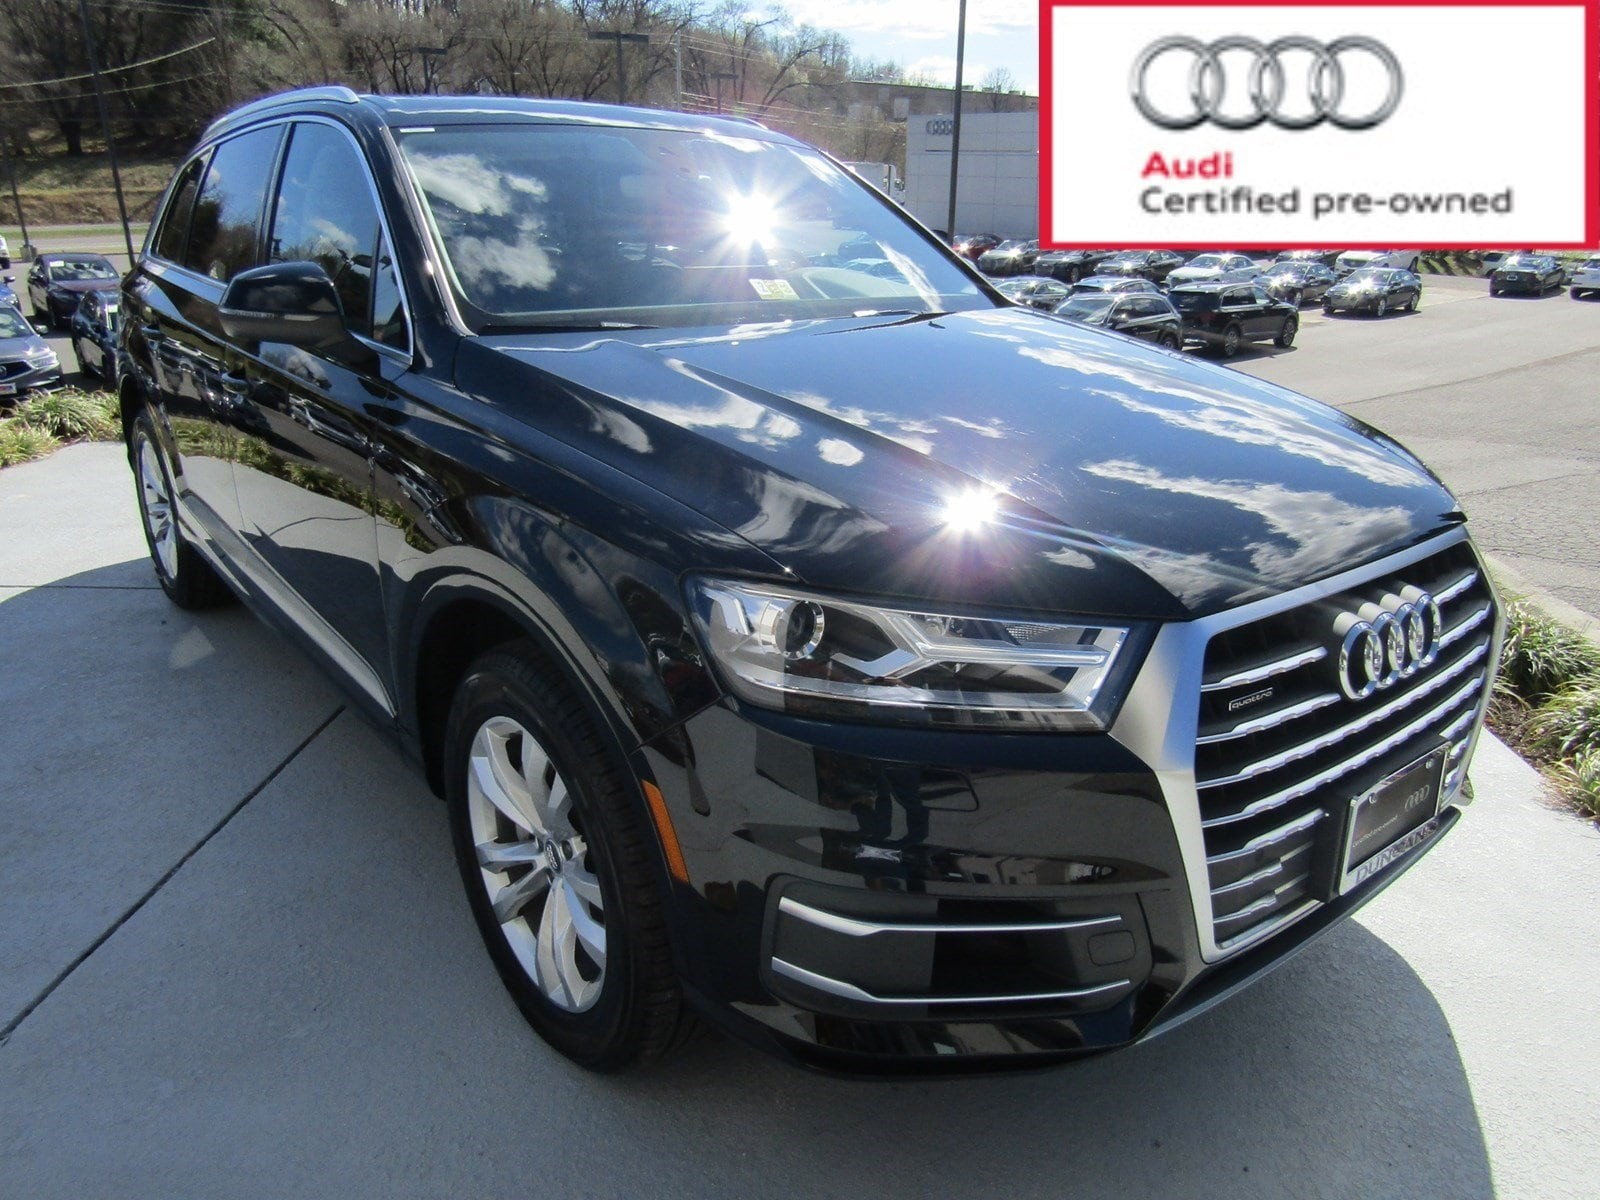 parts electrical touchpad system trunk satellite media used audio mounted receiver opt id audi radio auto